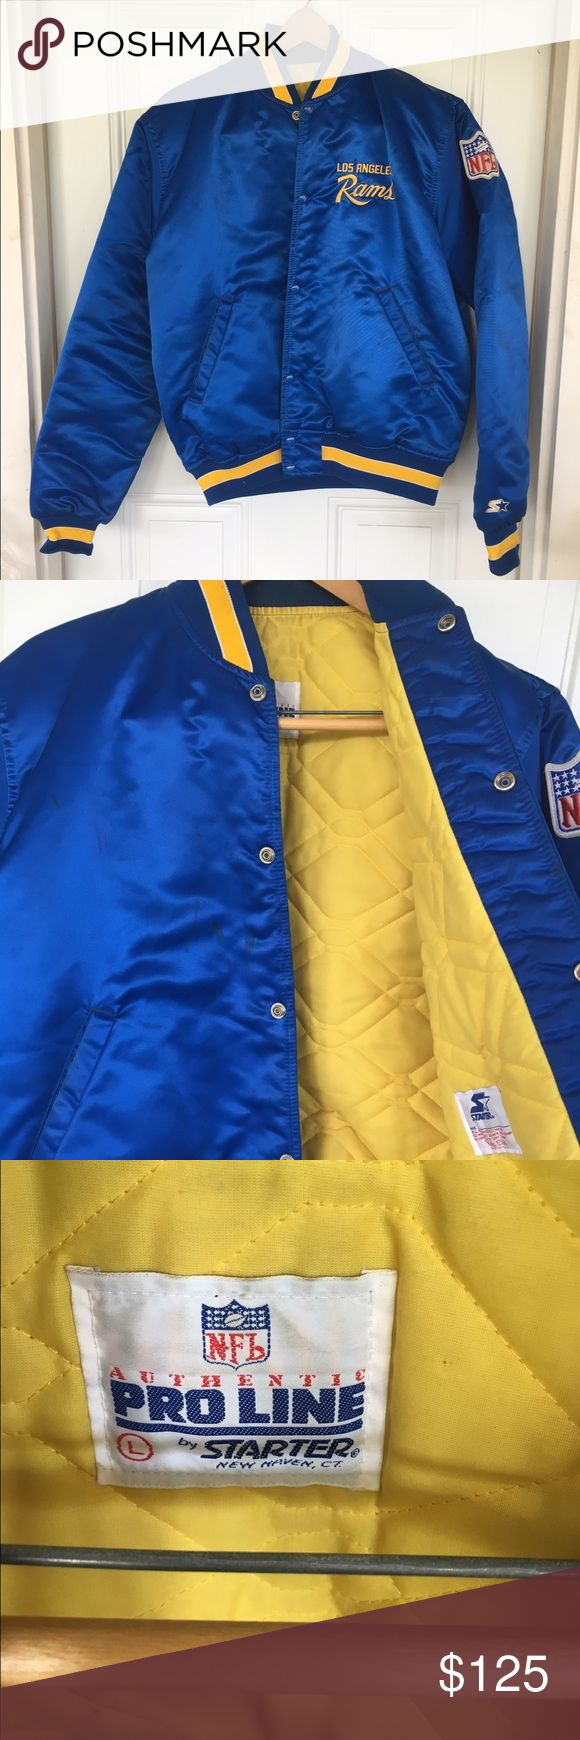 Vintage NFL LA Rams Bomber Jacket, blue Vintage; rare piece with Los Angeles logo; size Large; all defects are shown in photos- stain on right front; discoloring near neckline from wear Jackets & Coats Bomber & Varsity